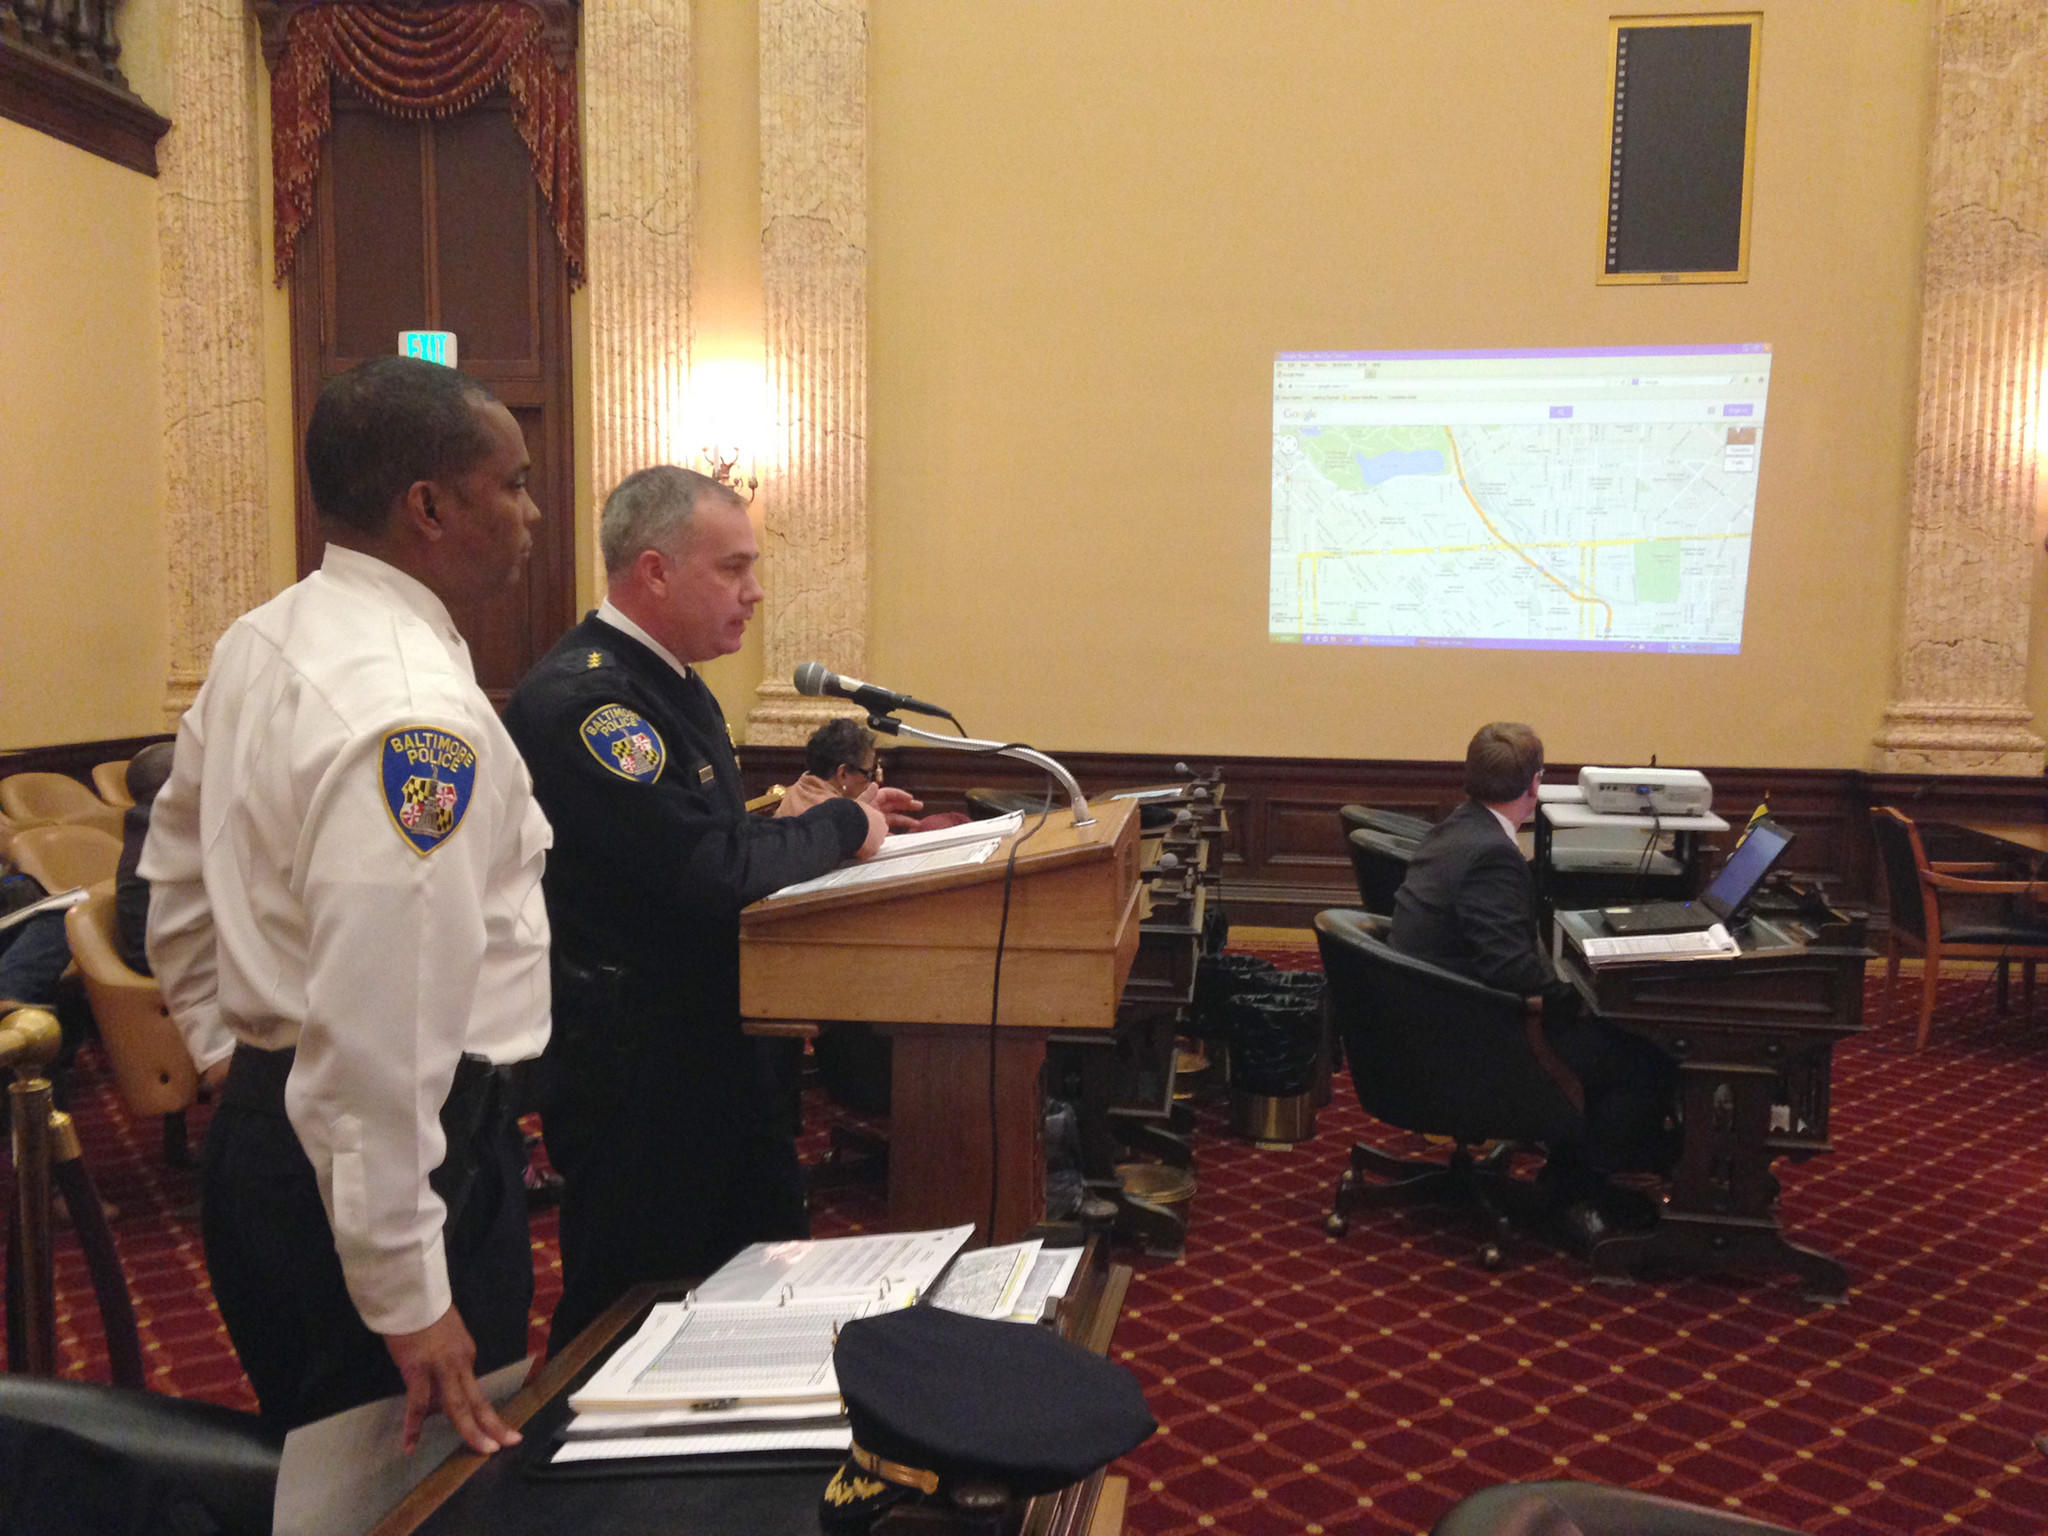 Col Darryl DeSousa, left, and Deputy Commissioner John Skinner go over crime trends at a City Council oversight hearing Tuesday.